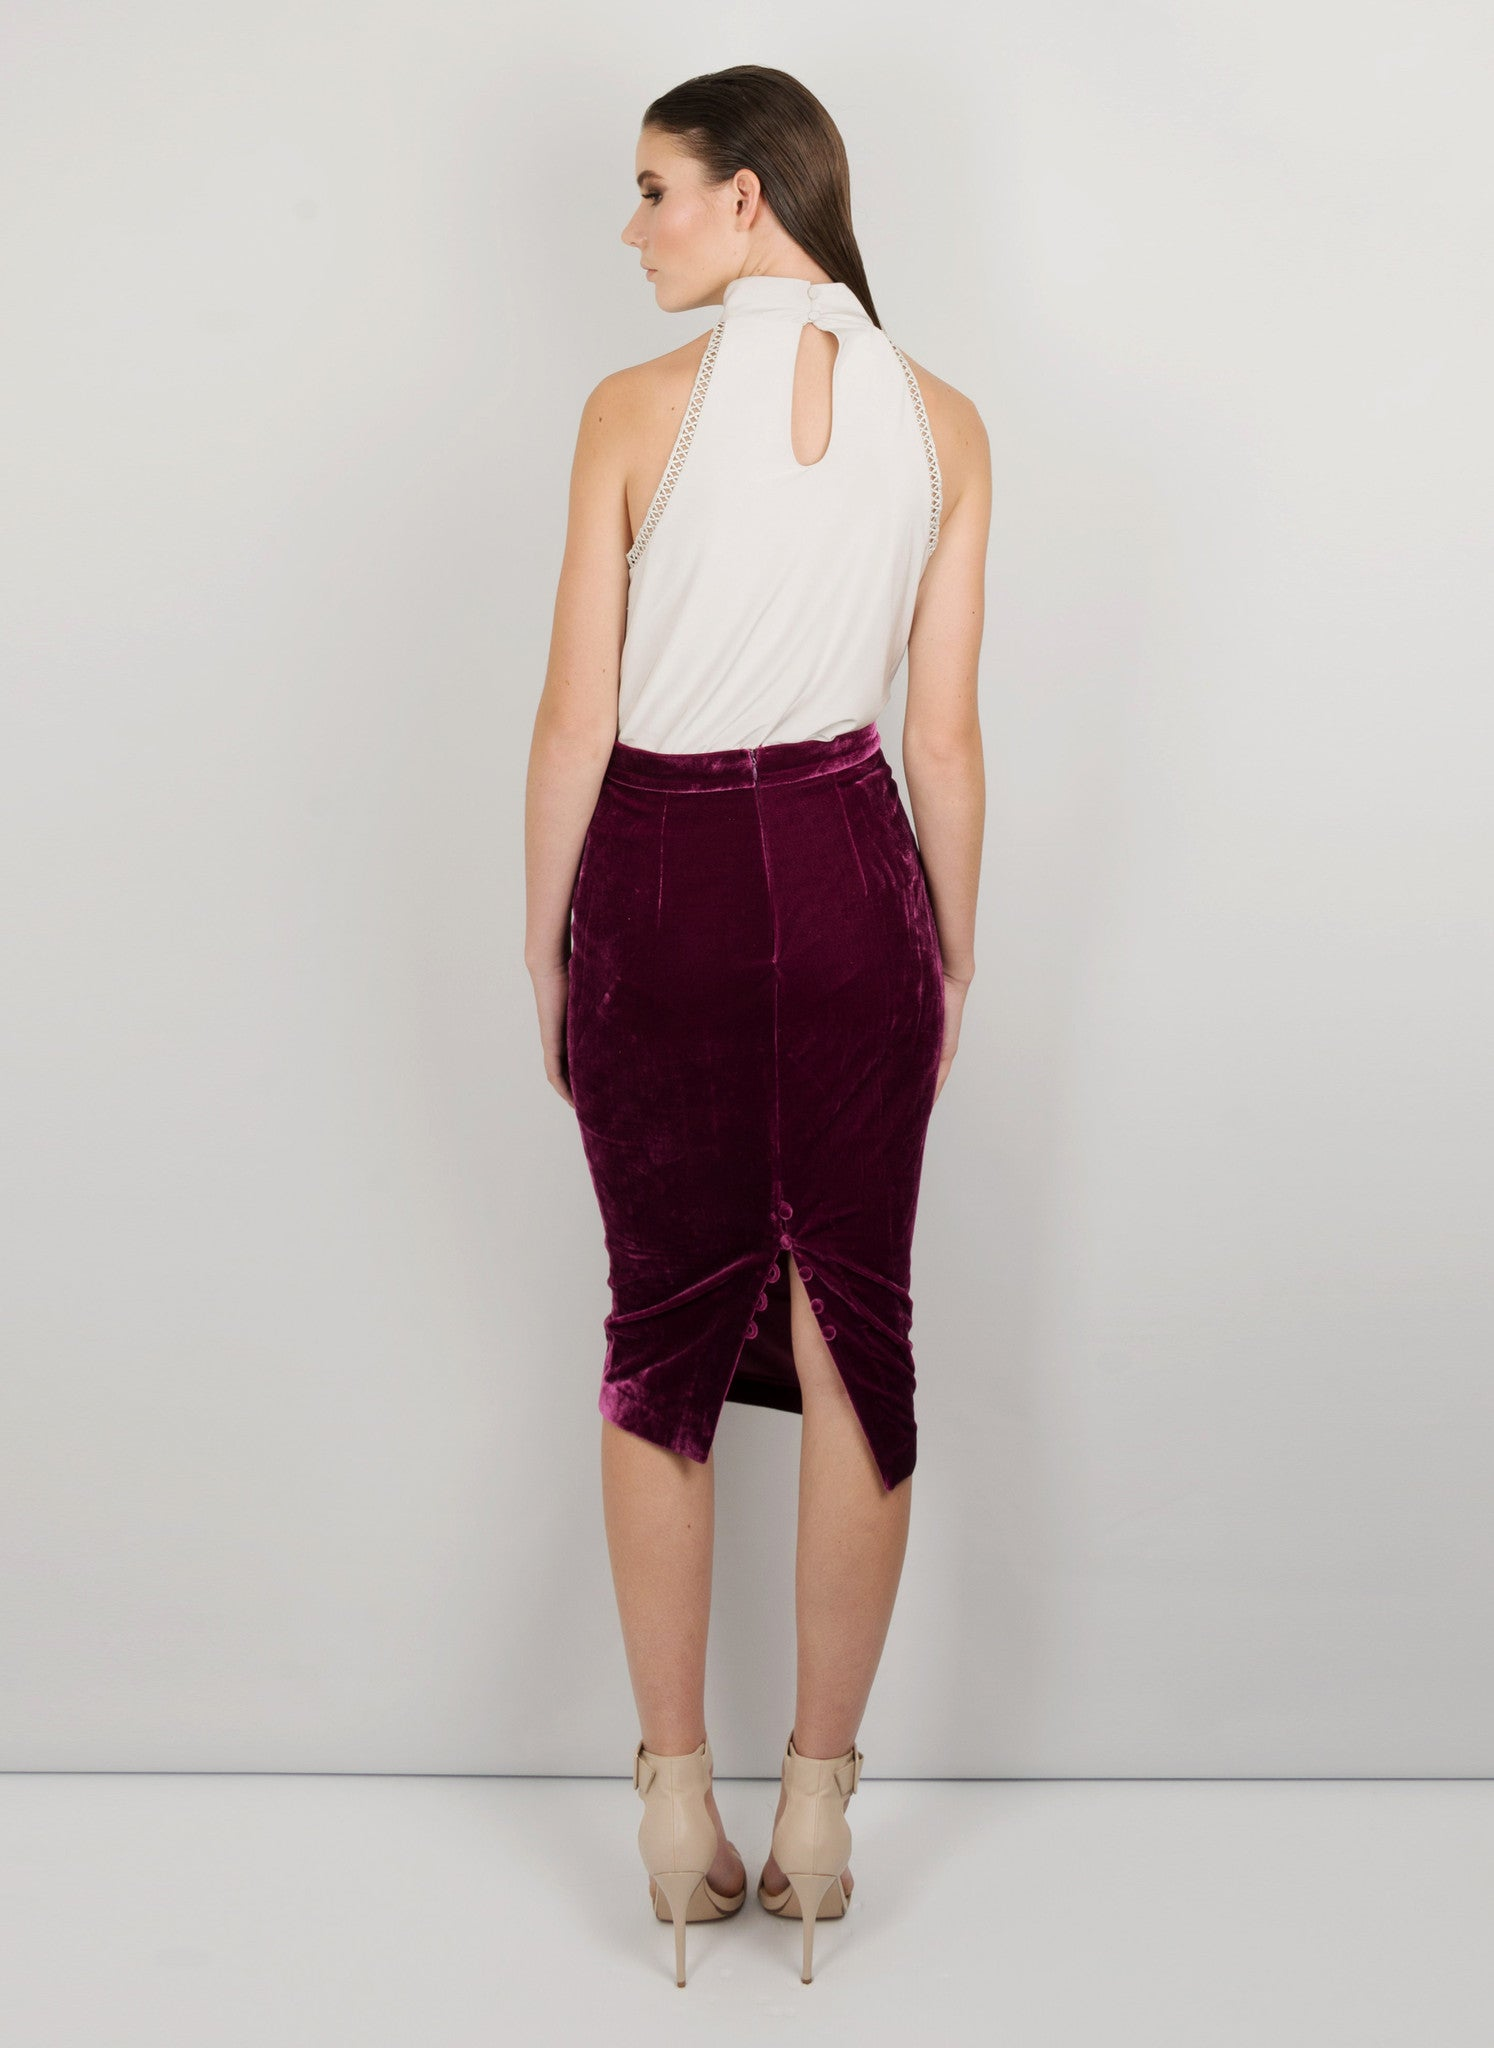 MADOLA-THE-LABEL - REBECA PENCIL SKIRT. Premium velvet fabric. Adjustable slit using buttons. Fully lined. Designed in Australia.